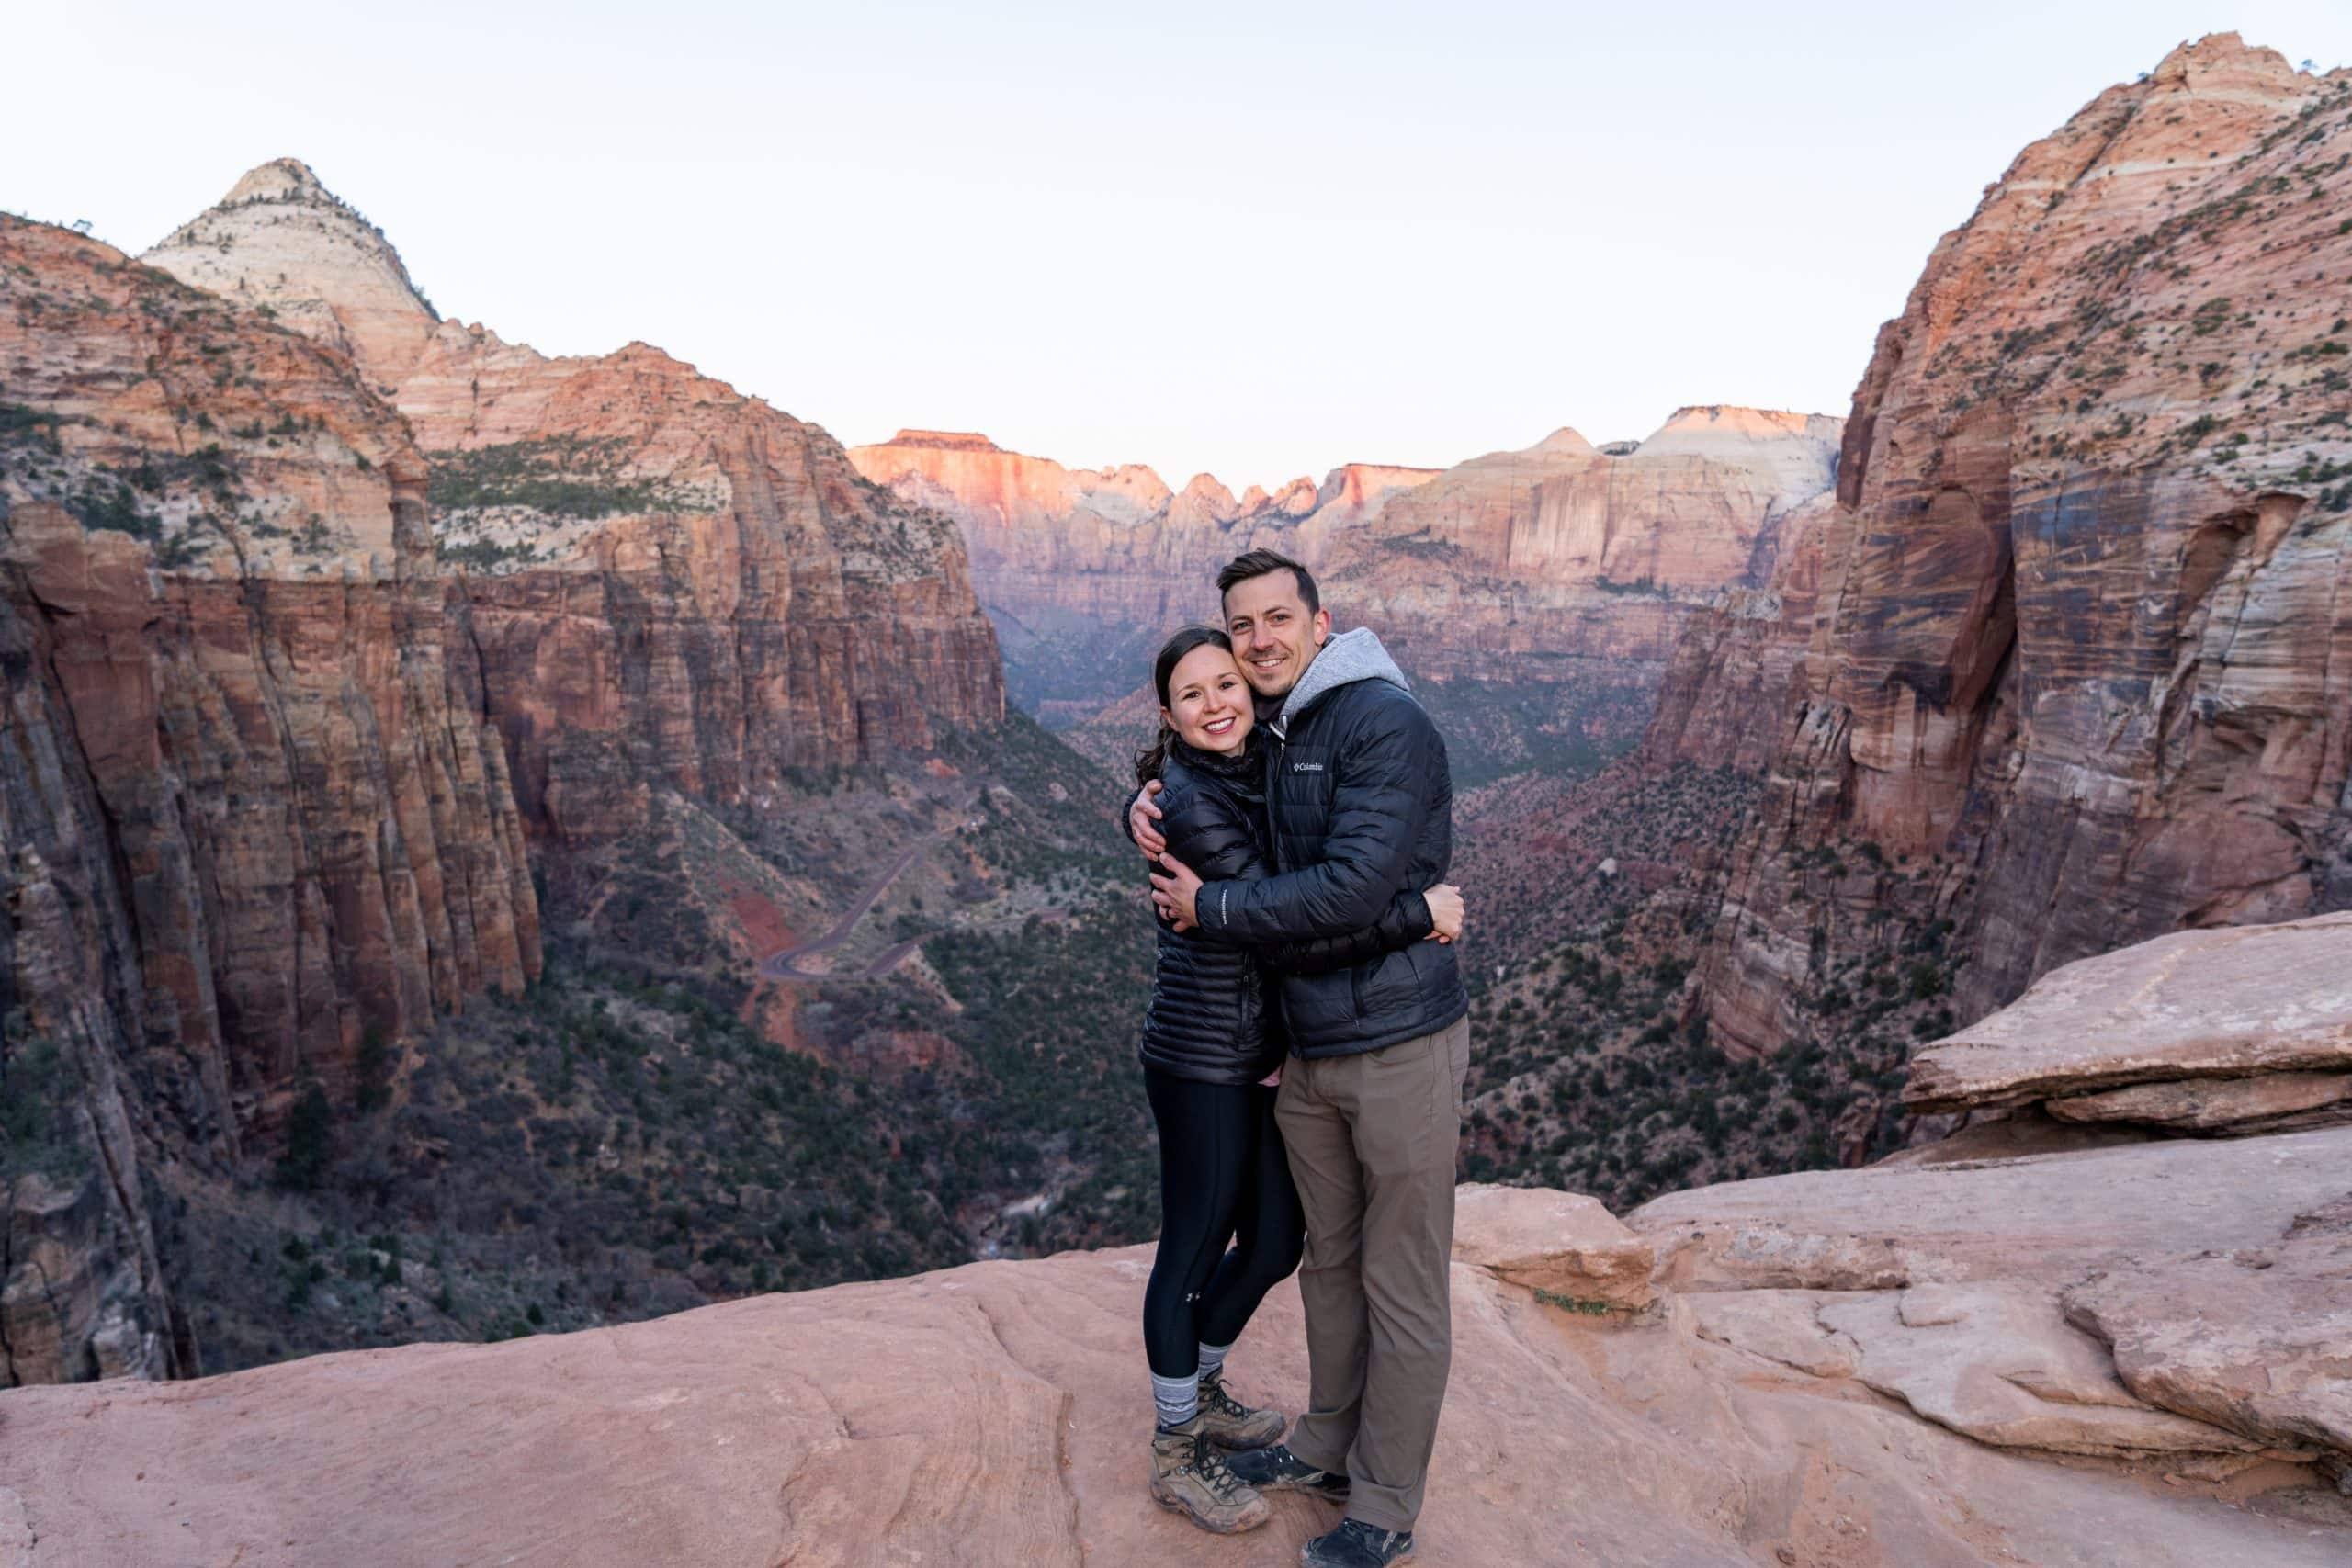 3 Days at Zion and Bryce Canyon National Parks